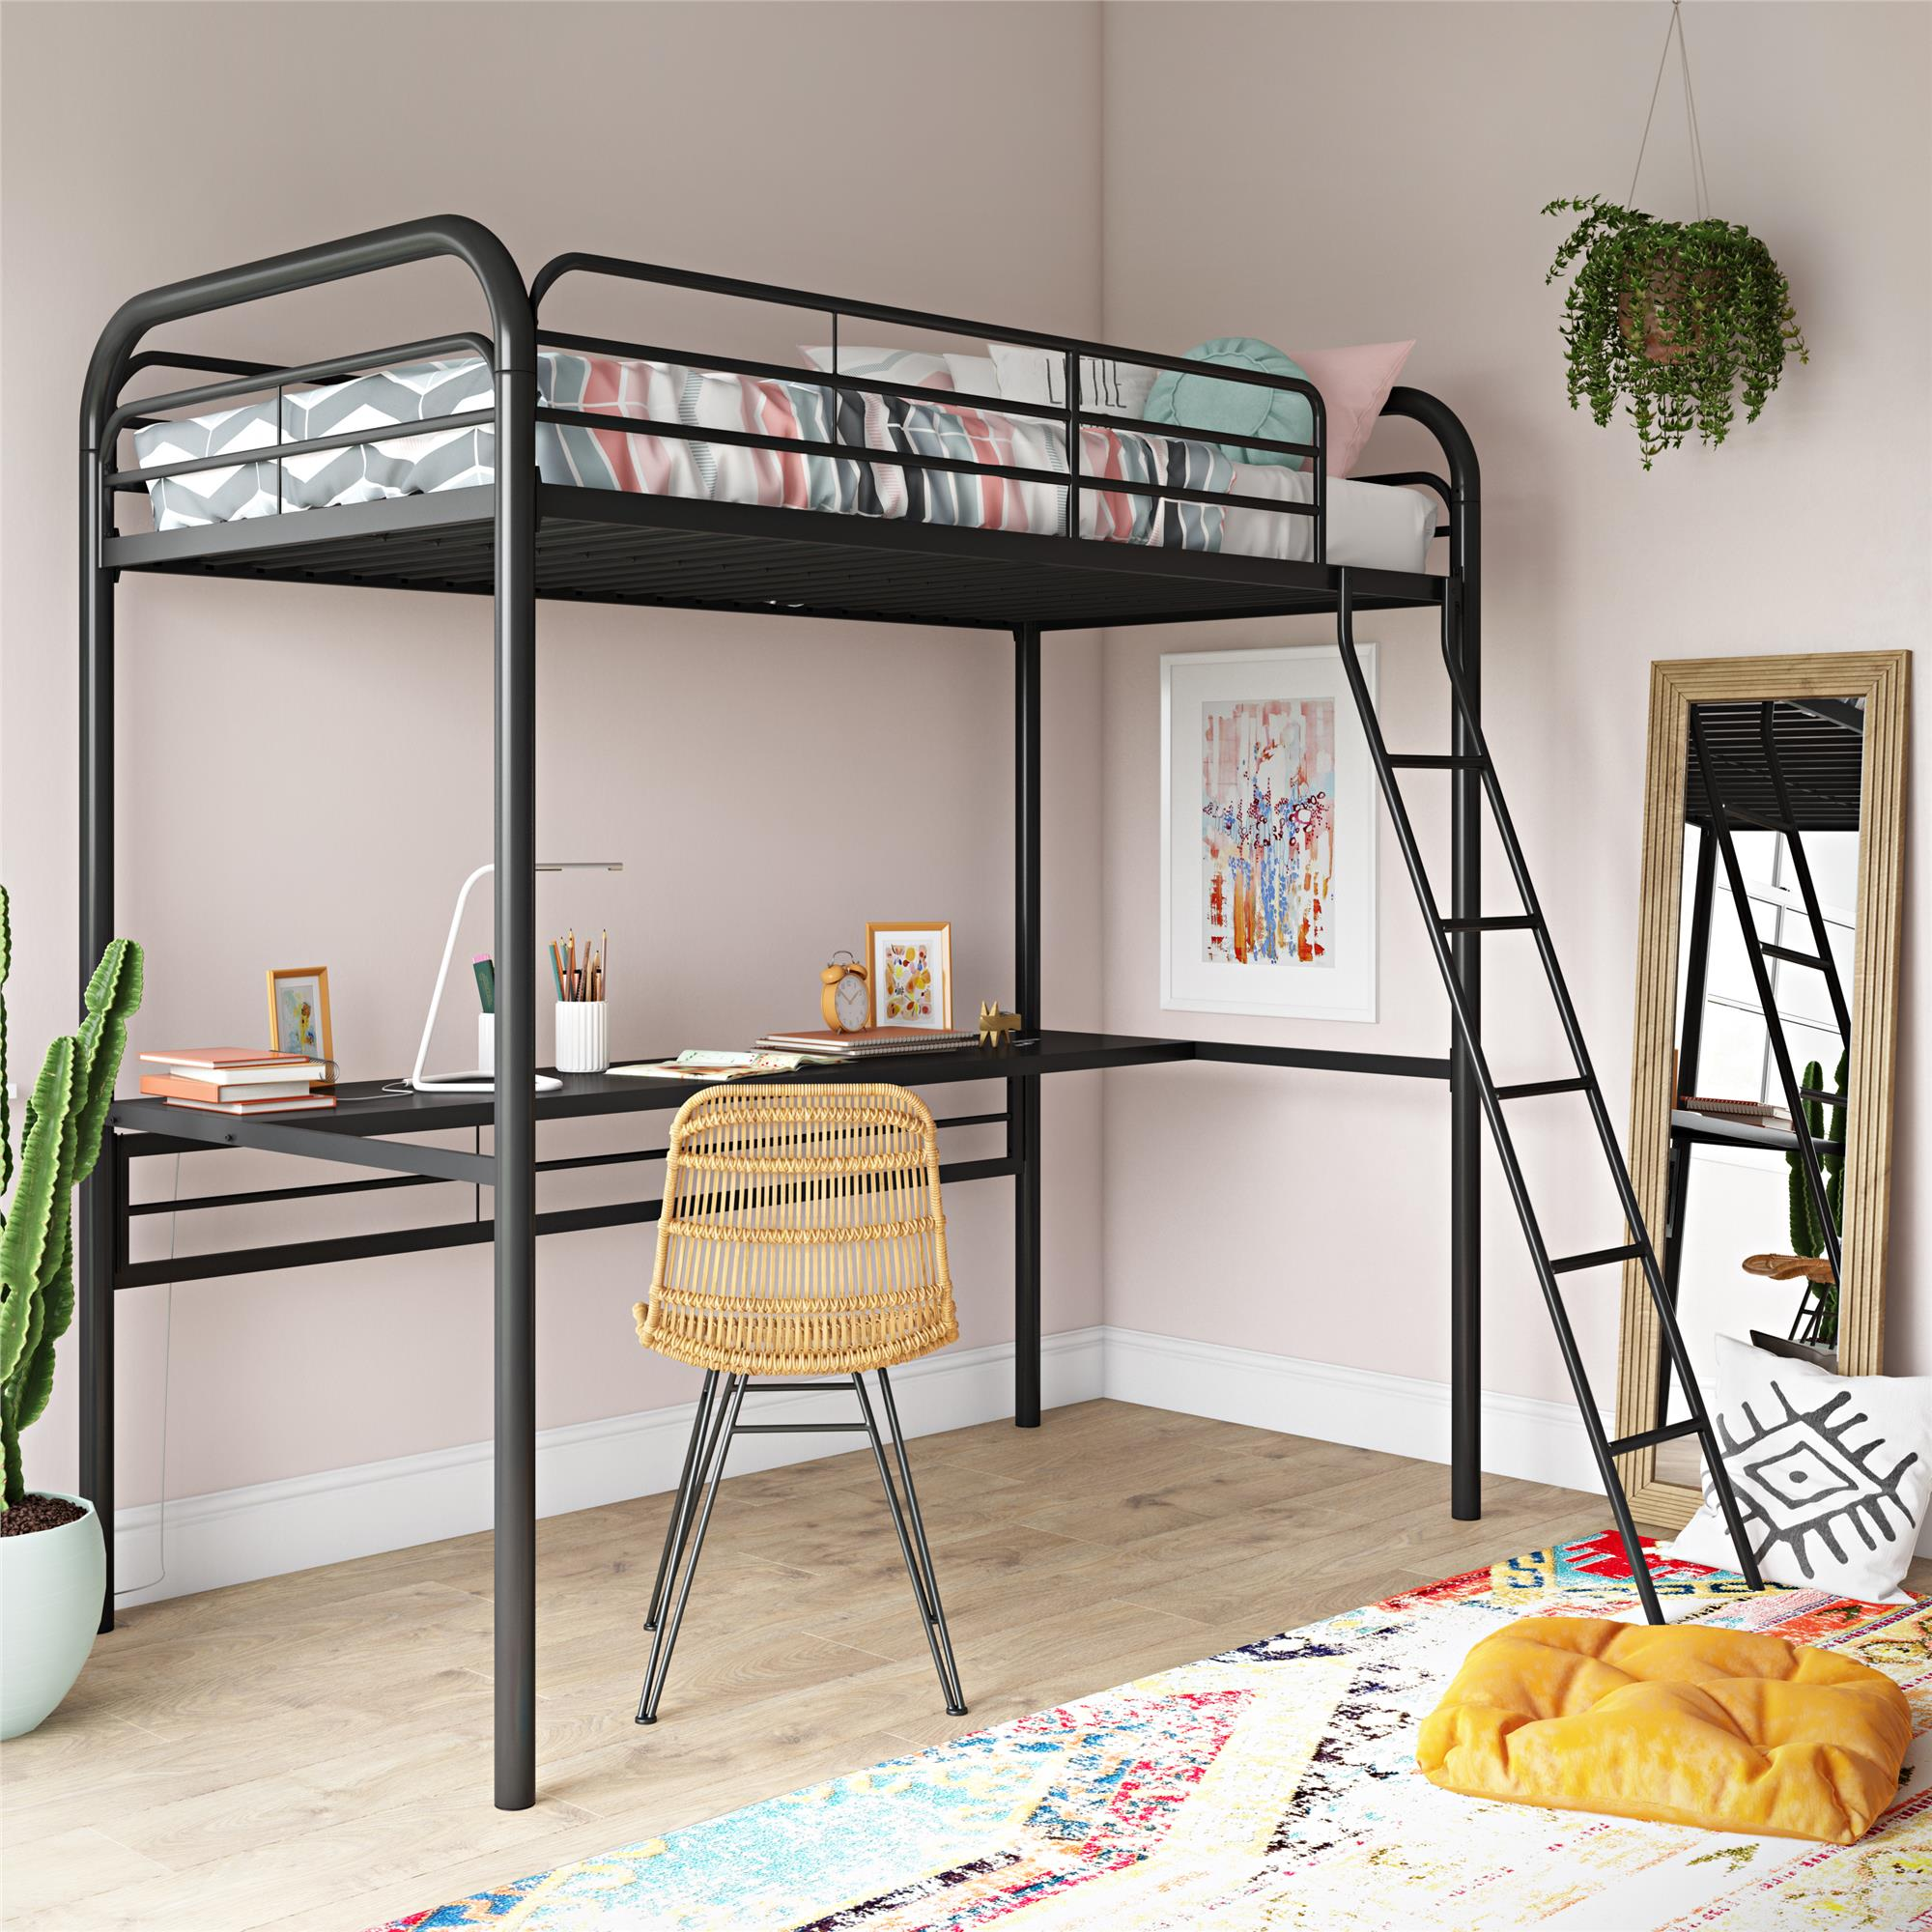 Dhp Metal Loft Bed With Desk Twin Size Frame Black Metal Black Desk Walmart Com Walmart Com